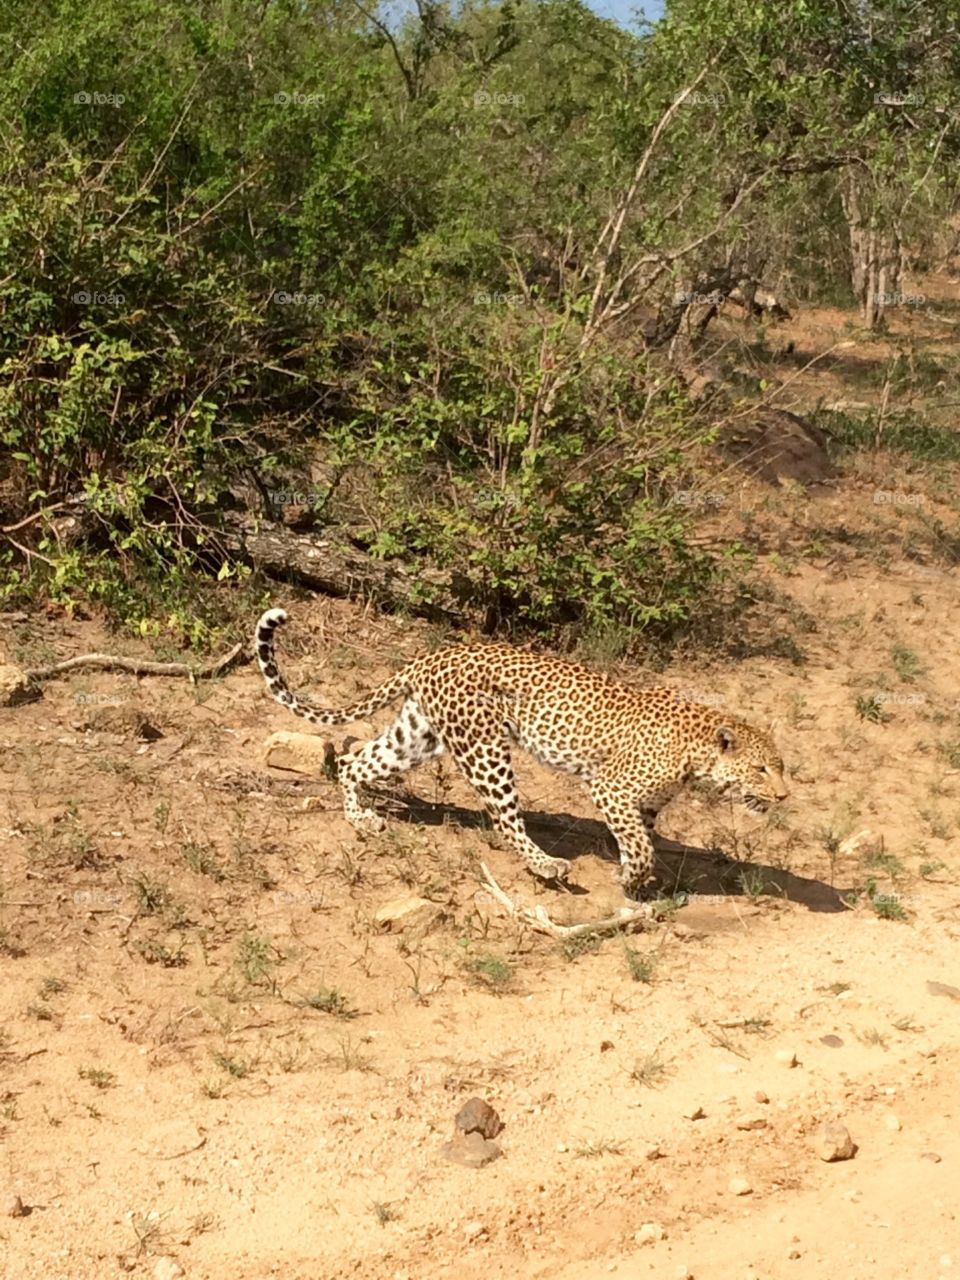 Lepard on the move